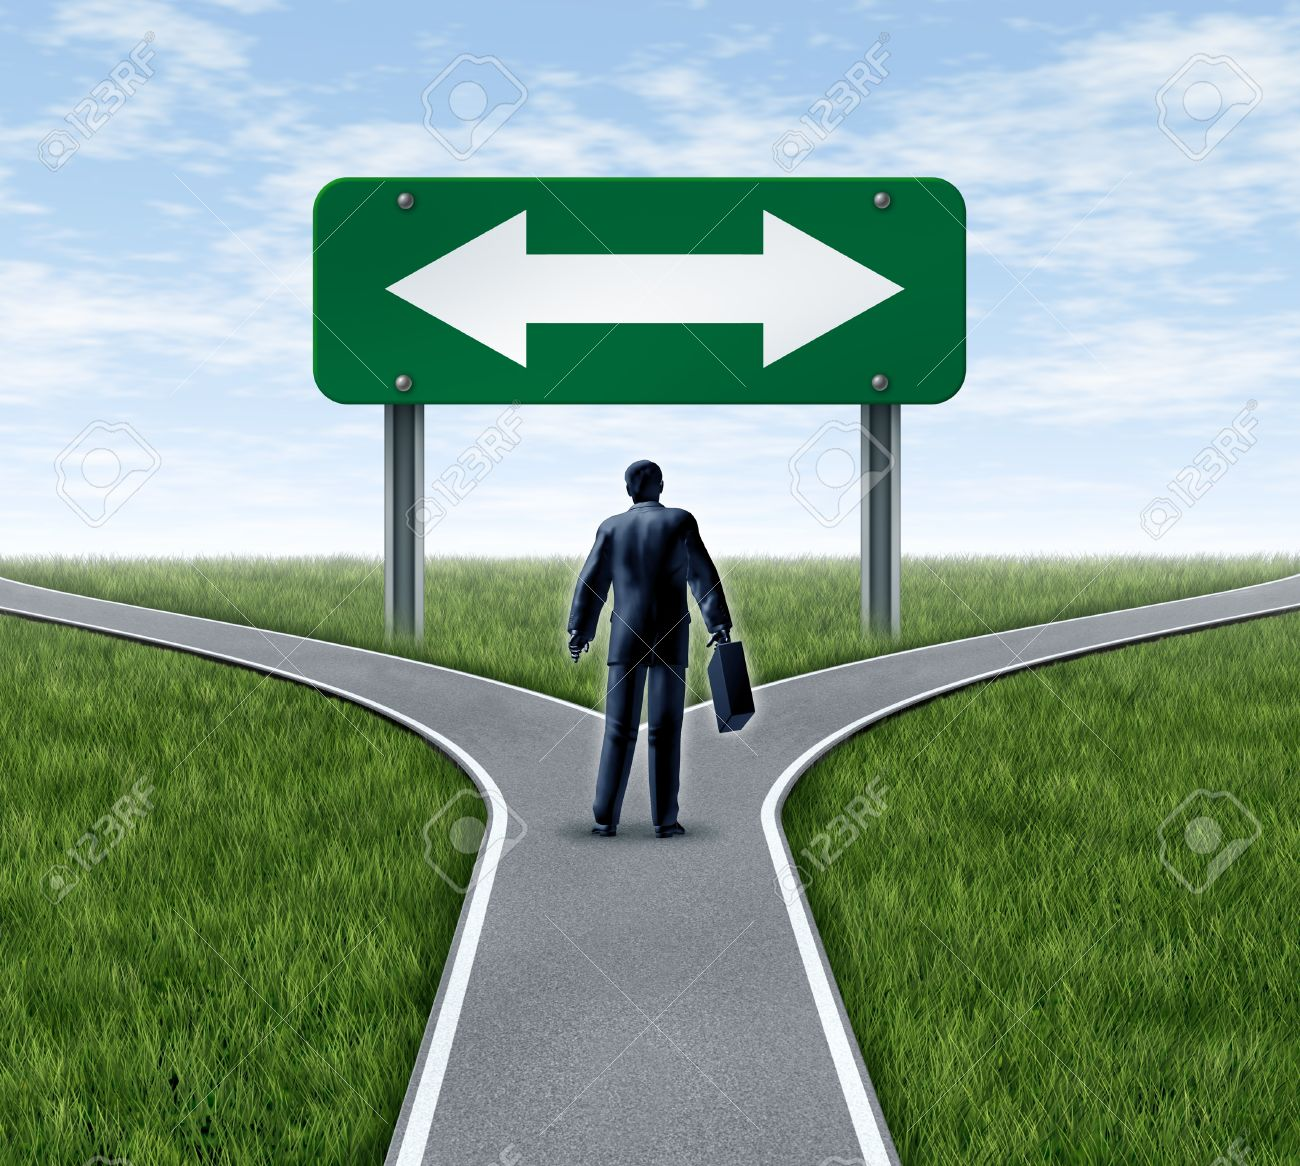 Decision time for a career with a business man at a cross roads and road sign with arrows showing a fork in the road representing the concept of a work dilemma choosing the direction to go when facing two equal or similar job options. - 10674643